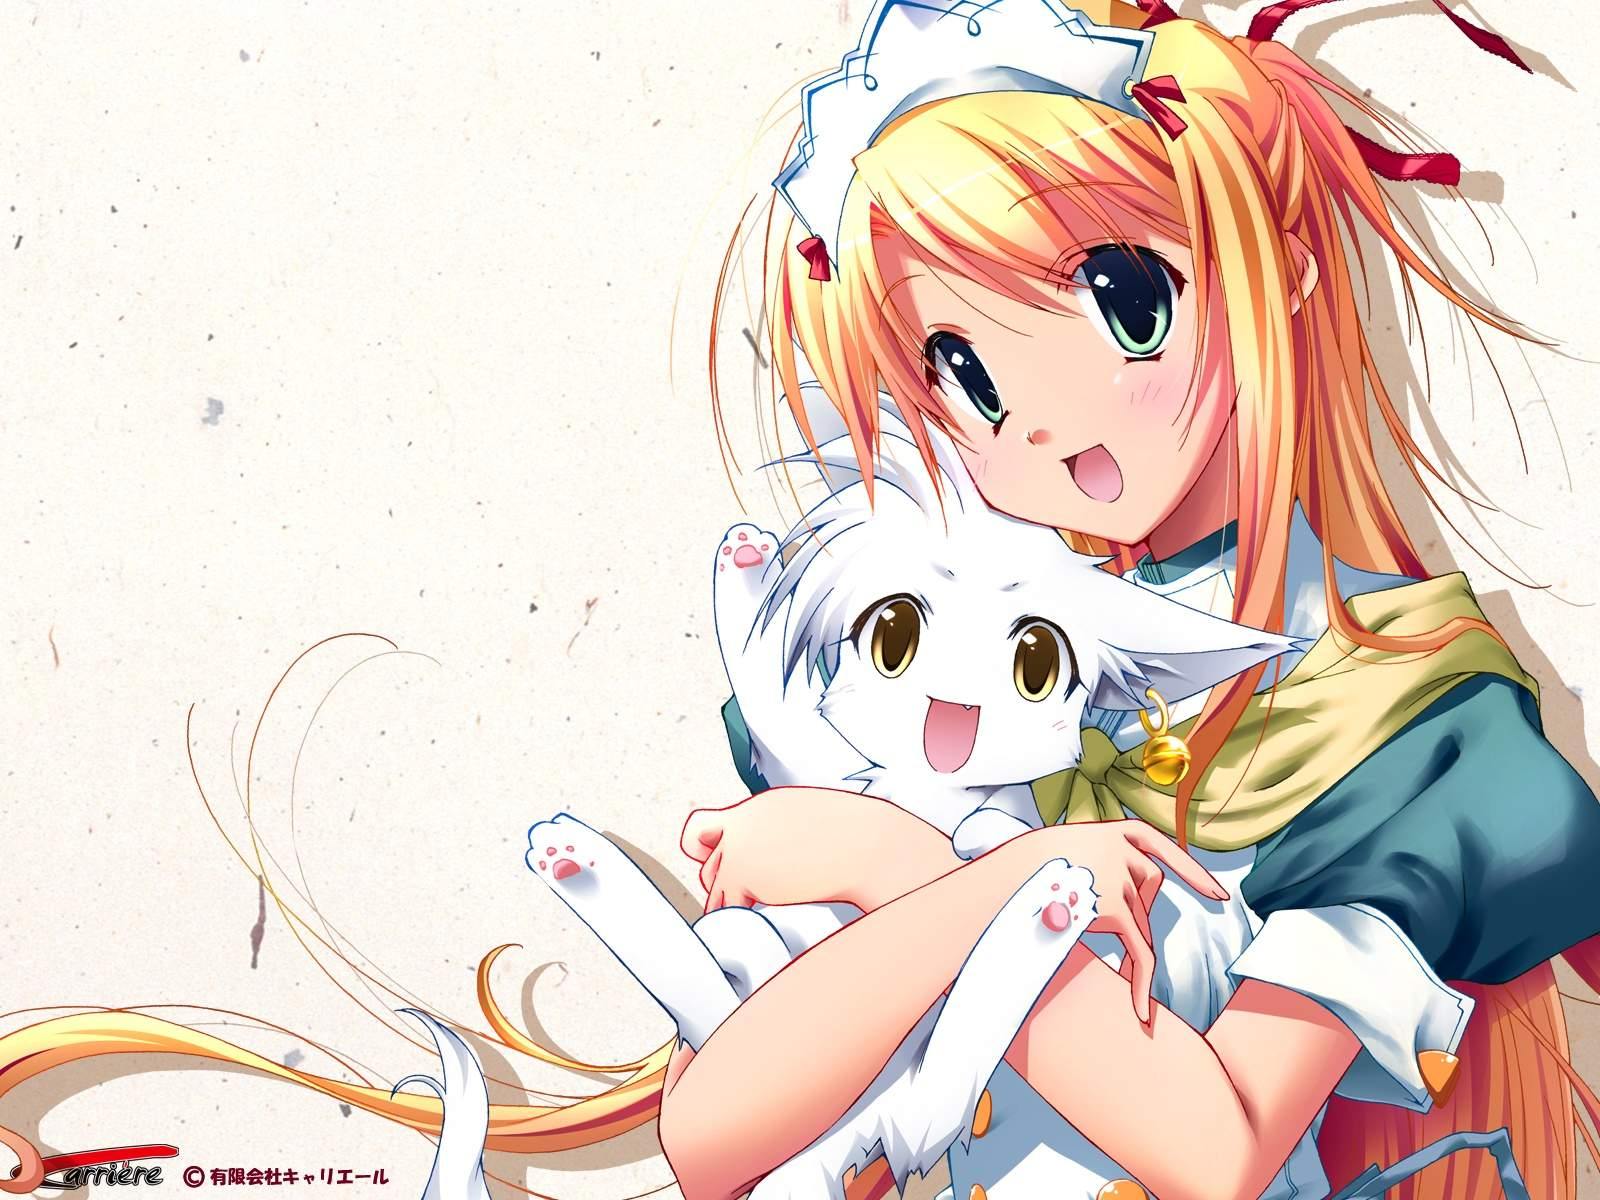 Cute Anime Wallpapers Download Wallpaper DaWallpaperz 1600x1200